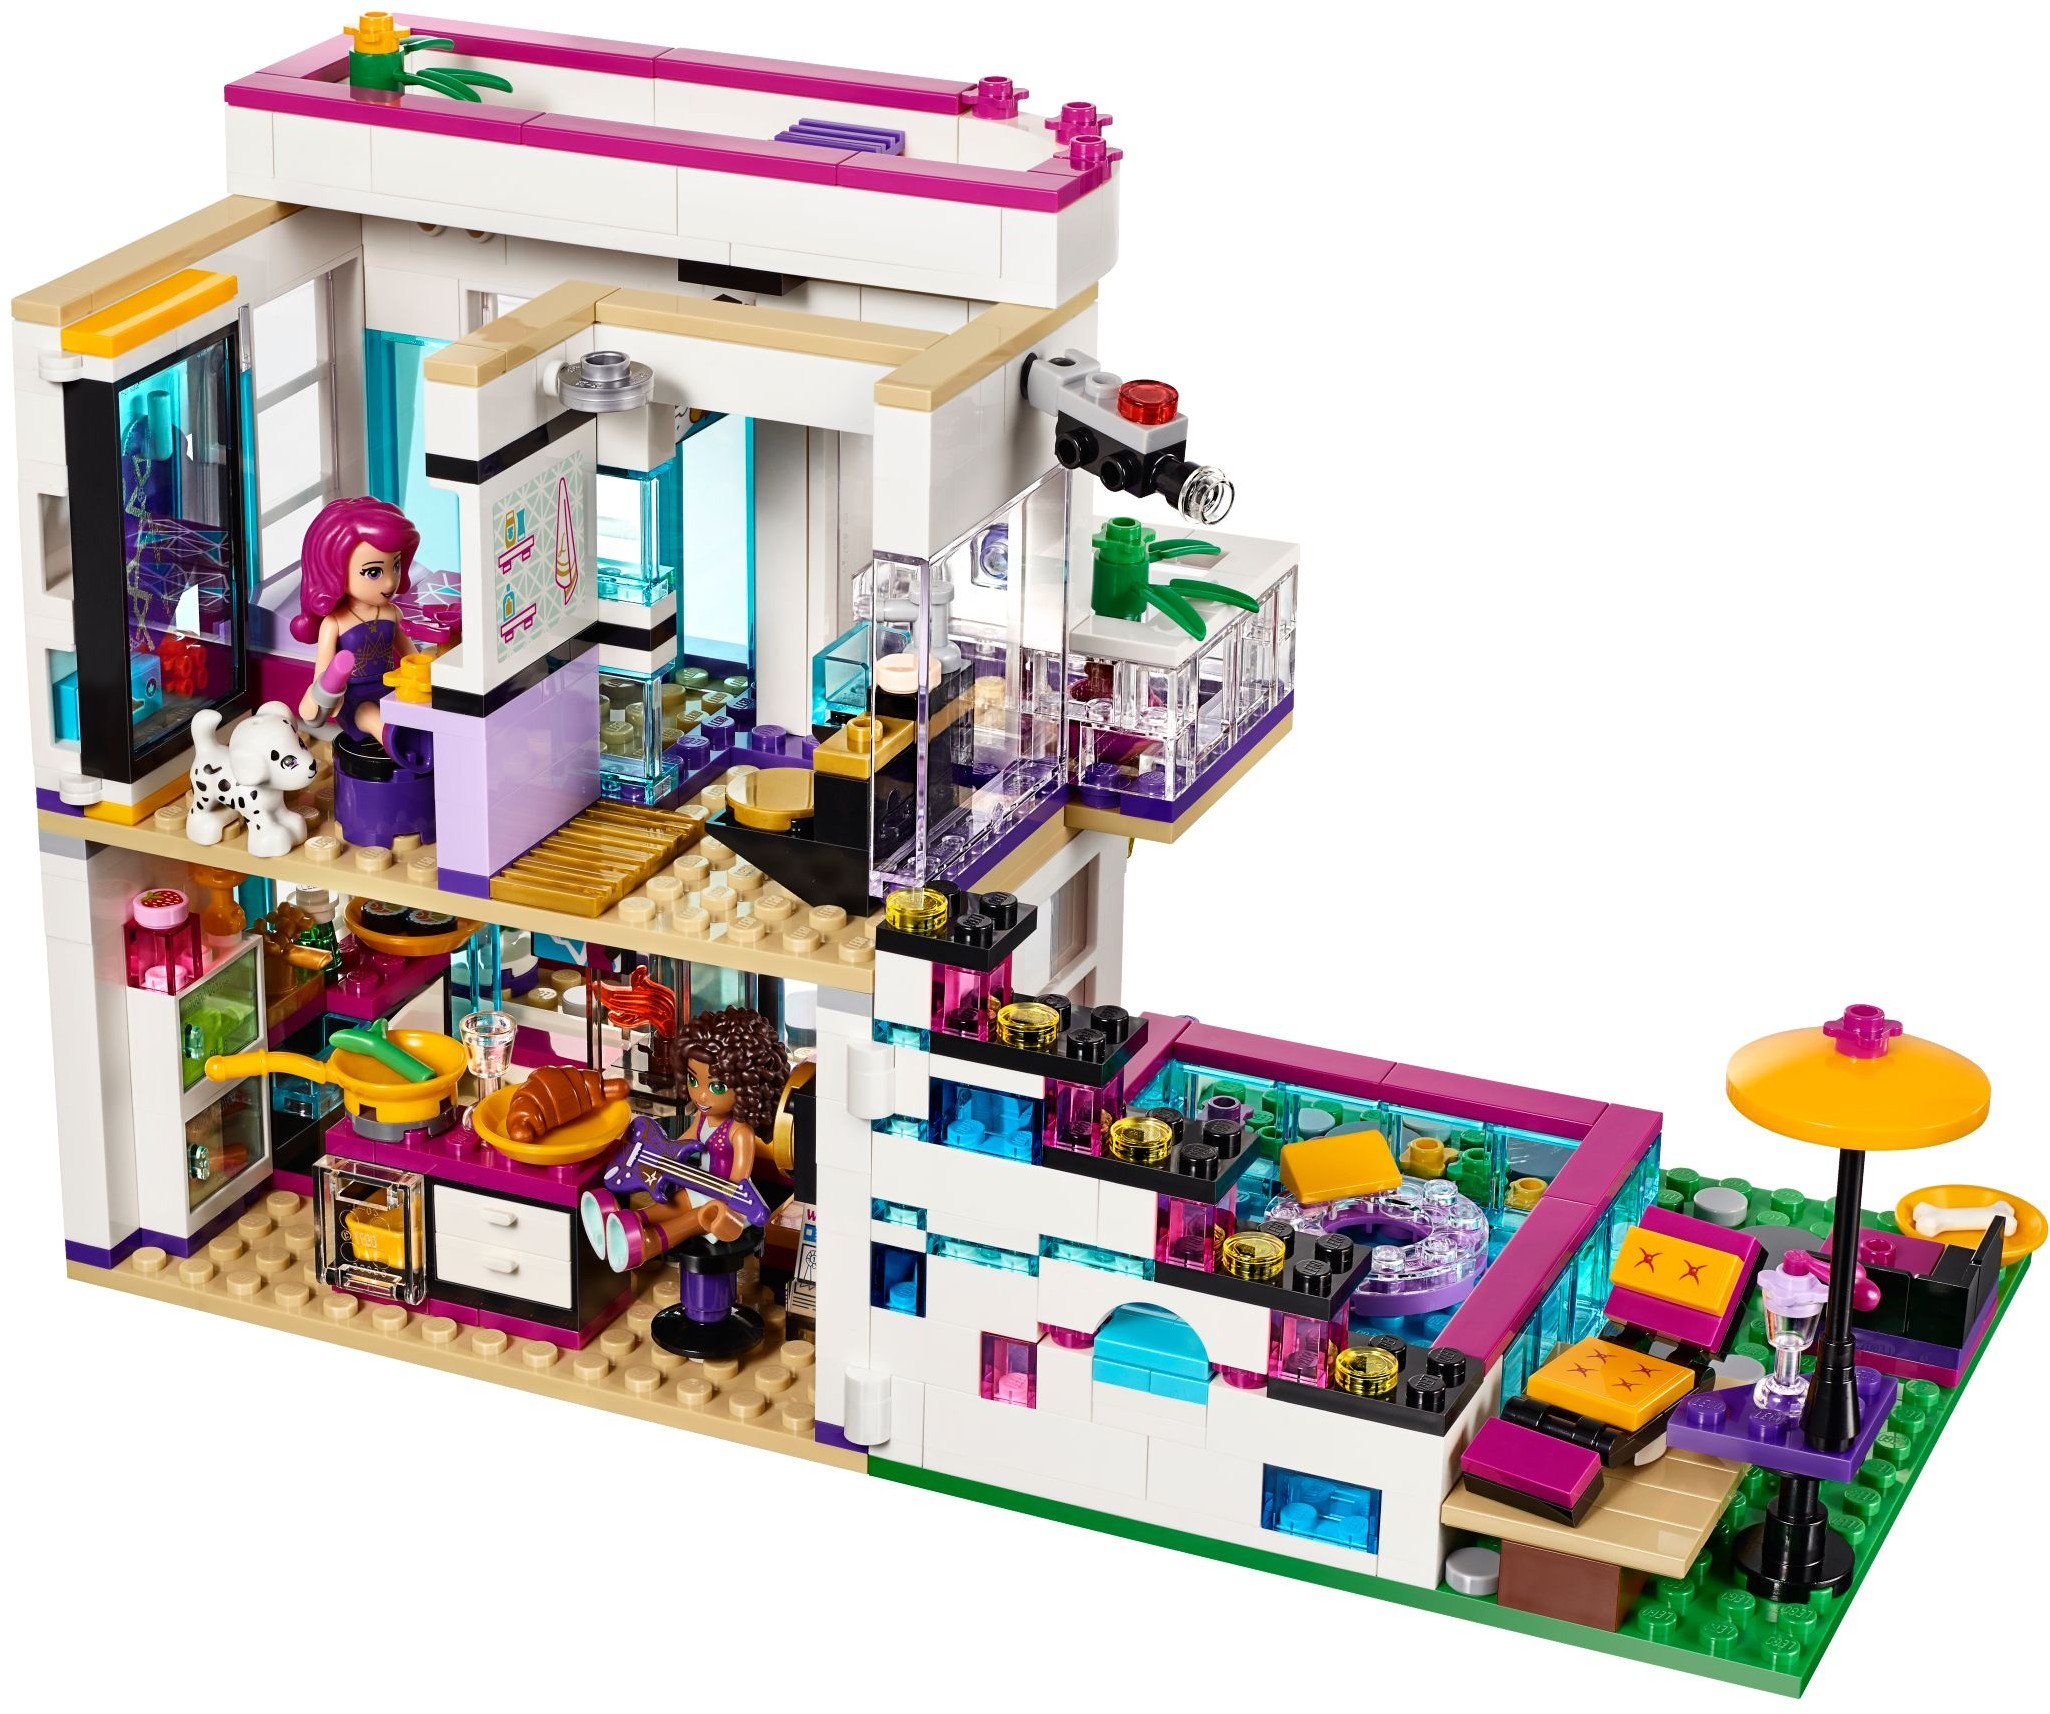 Lego friends 41135 pas cher la maison de la pop star livi for Lego friends salon de coiffure